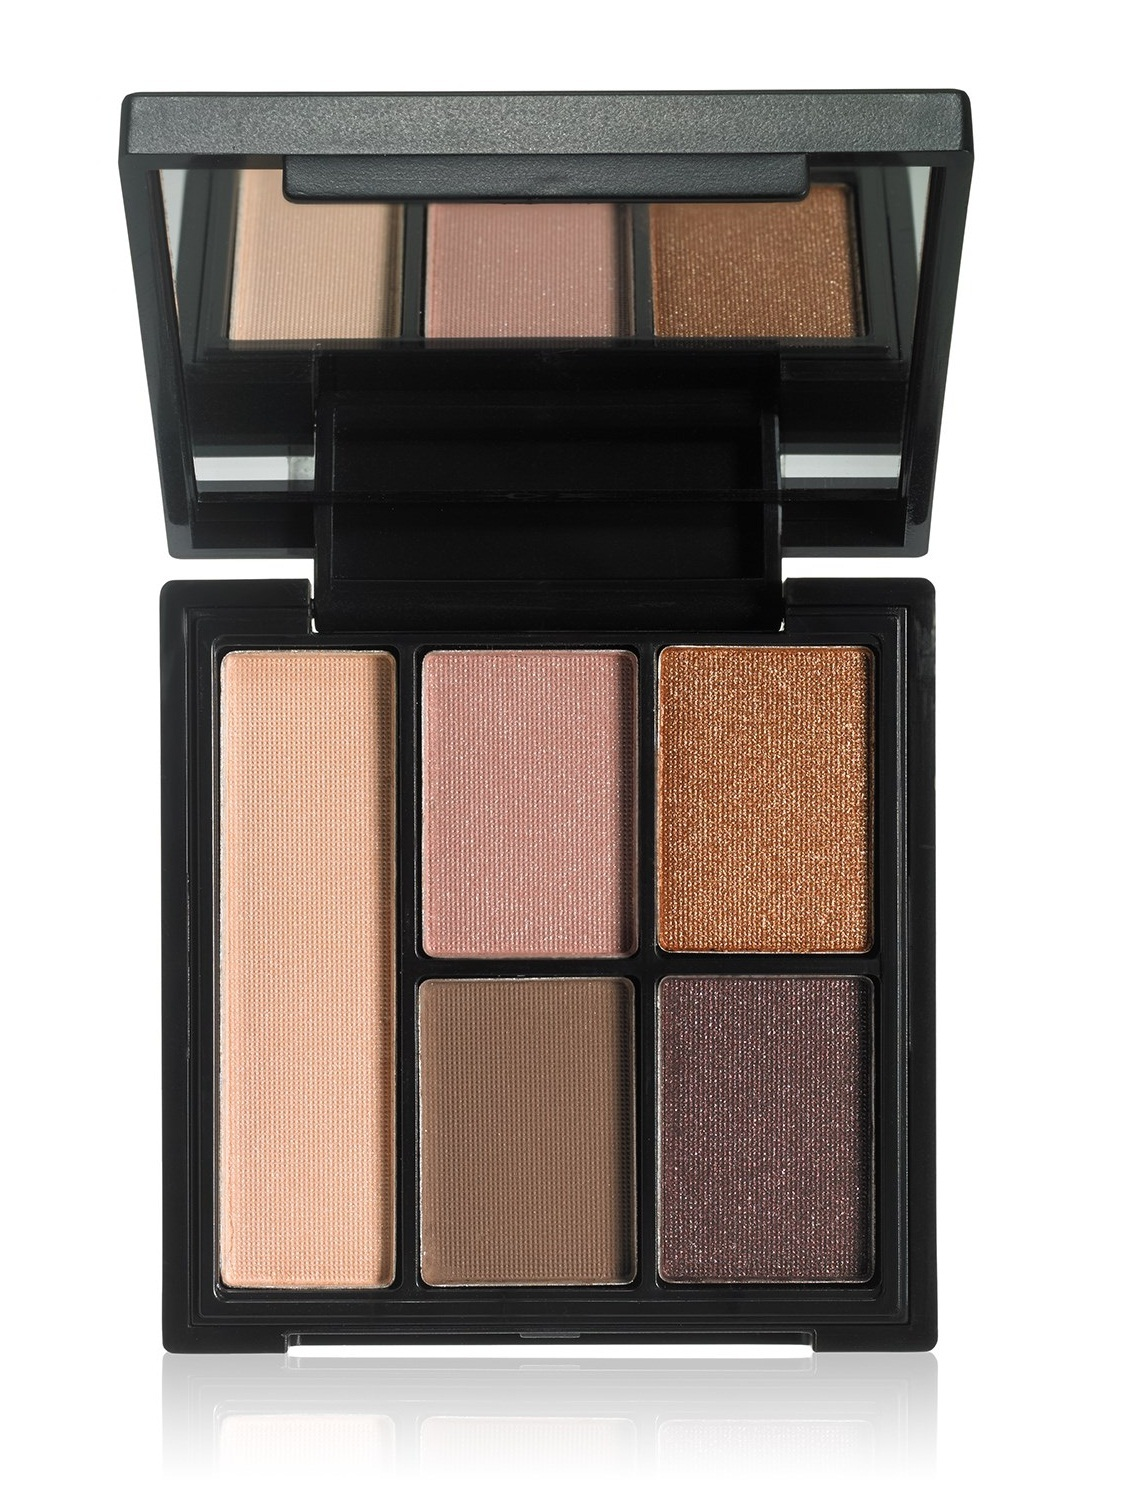 e.l.f. Clay Eyeshadow Palette - Saturday Sunsets.jpg